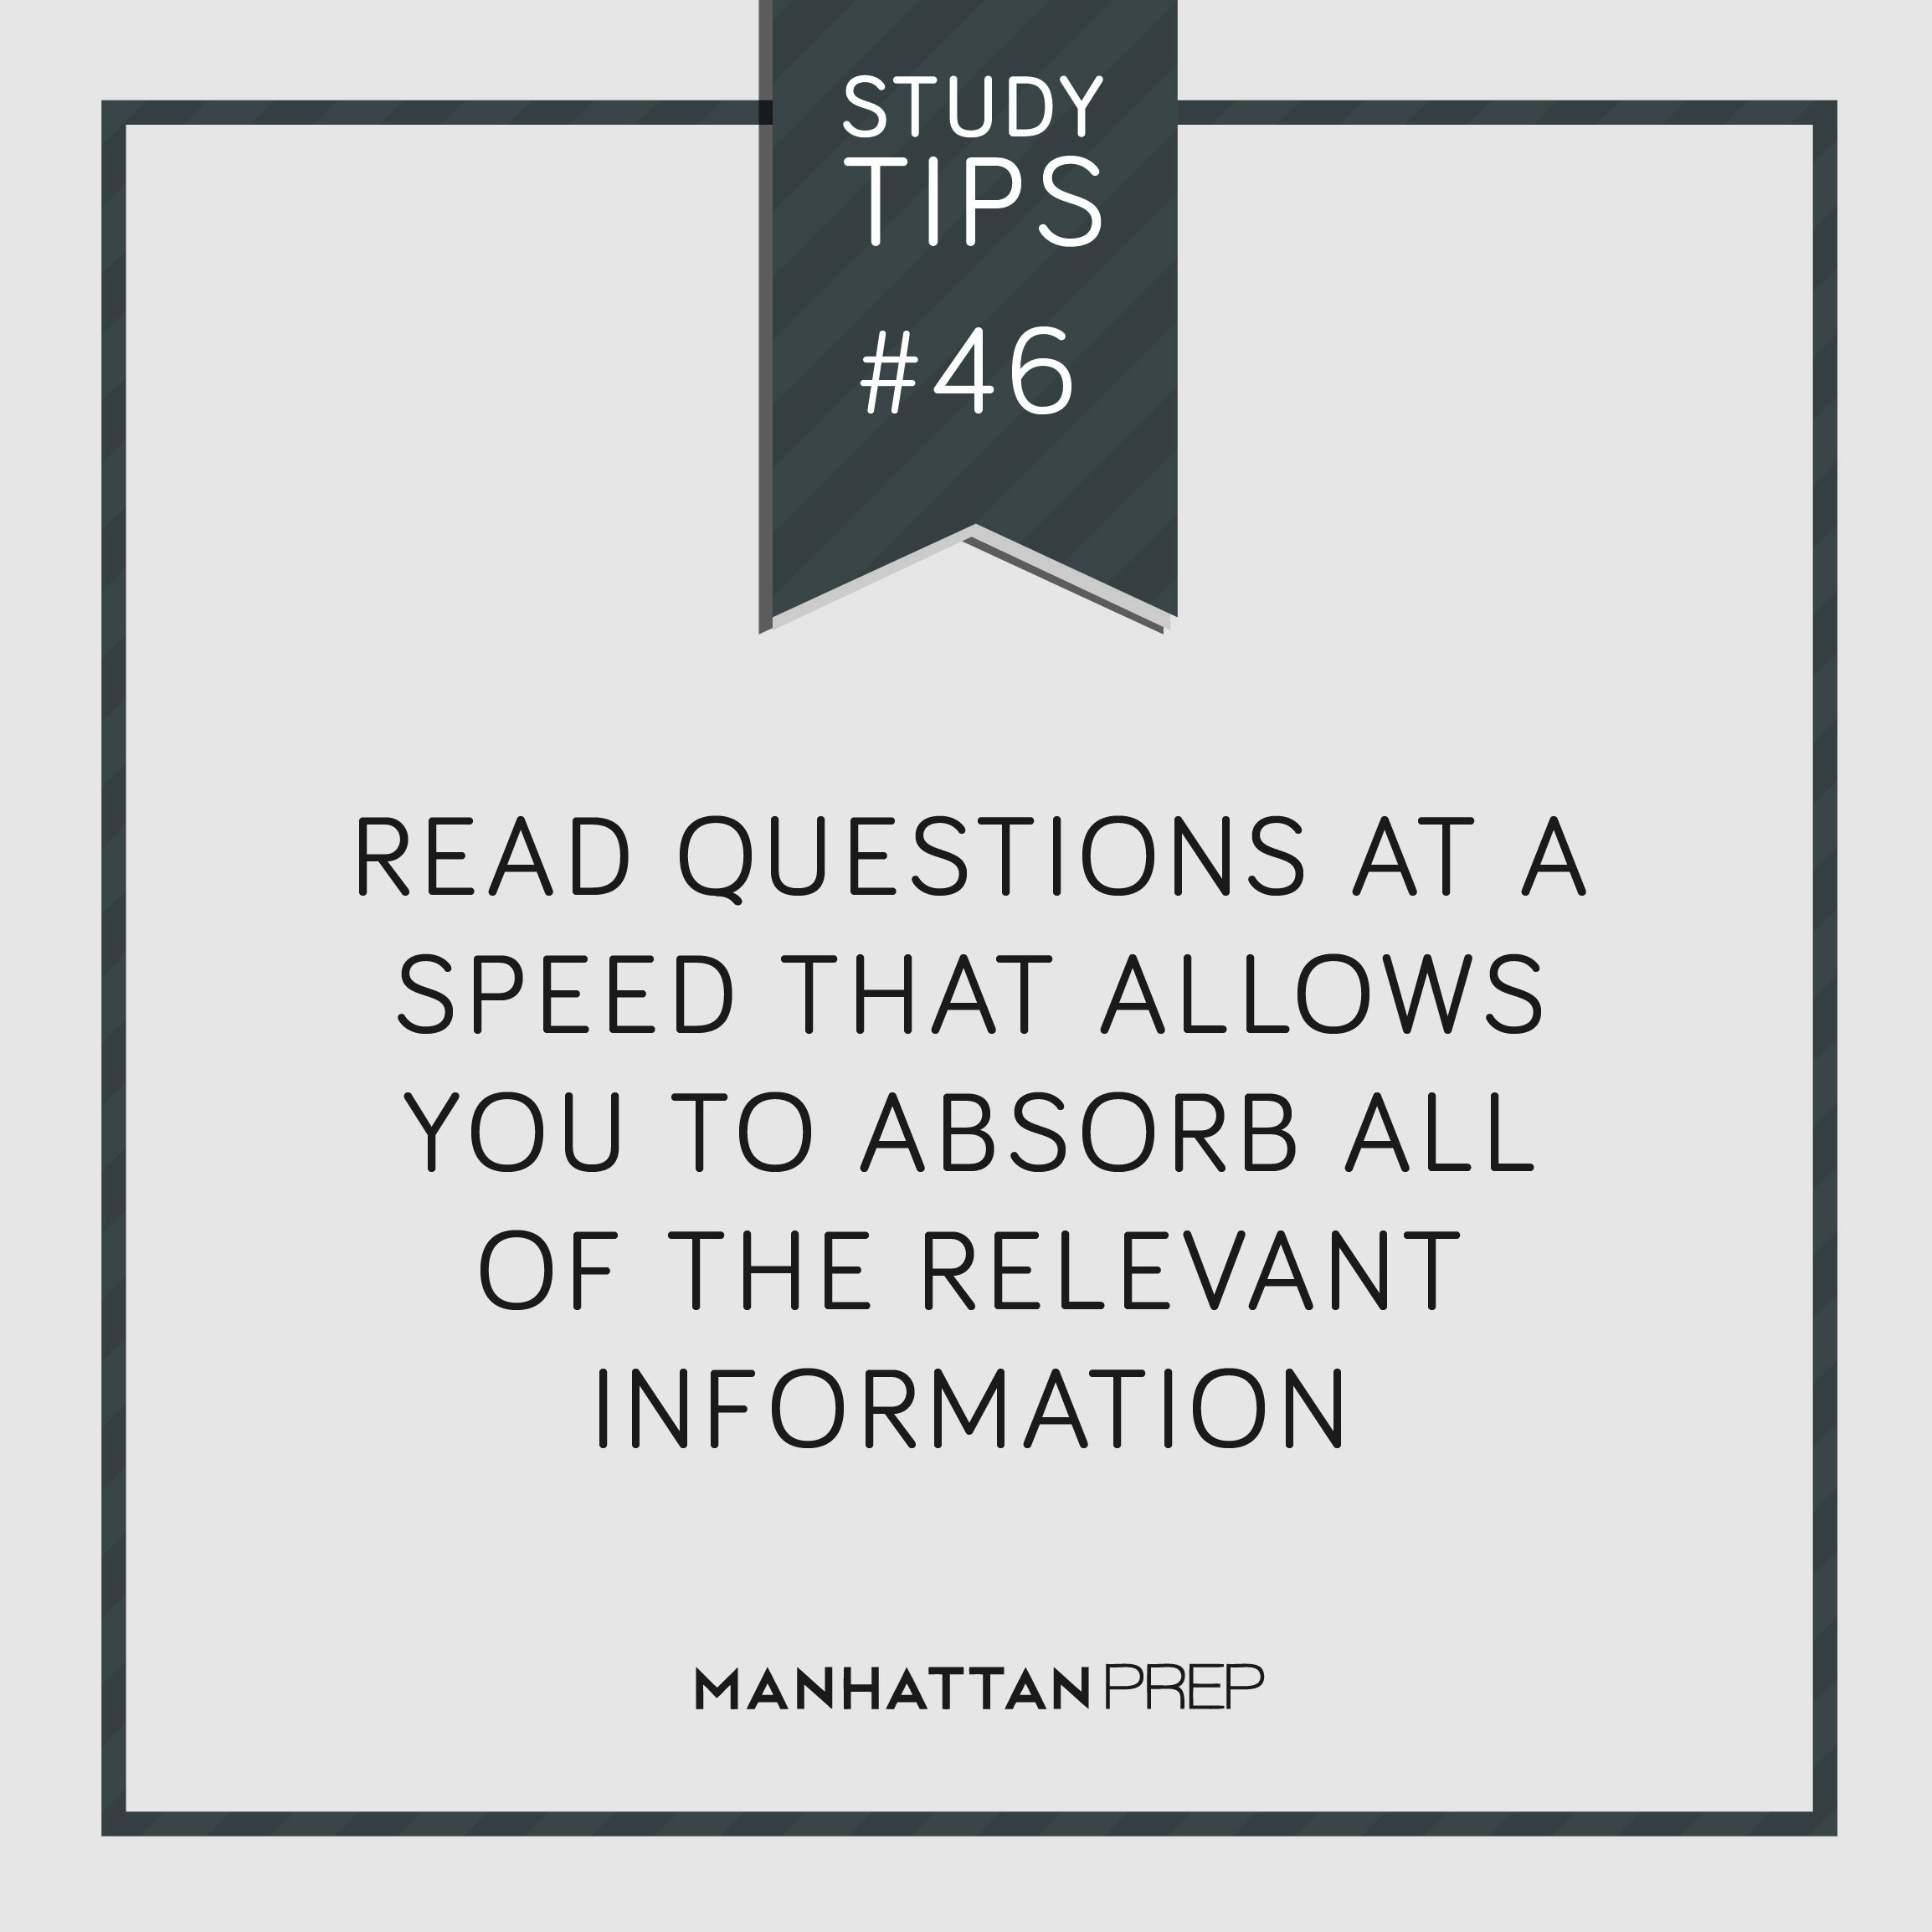 Read questions at a speed that allows you to absorb all of the relevant information.